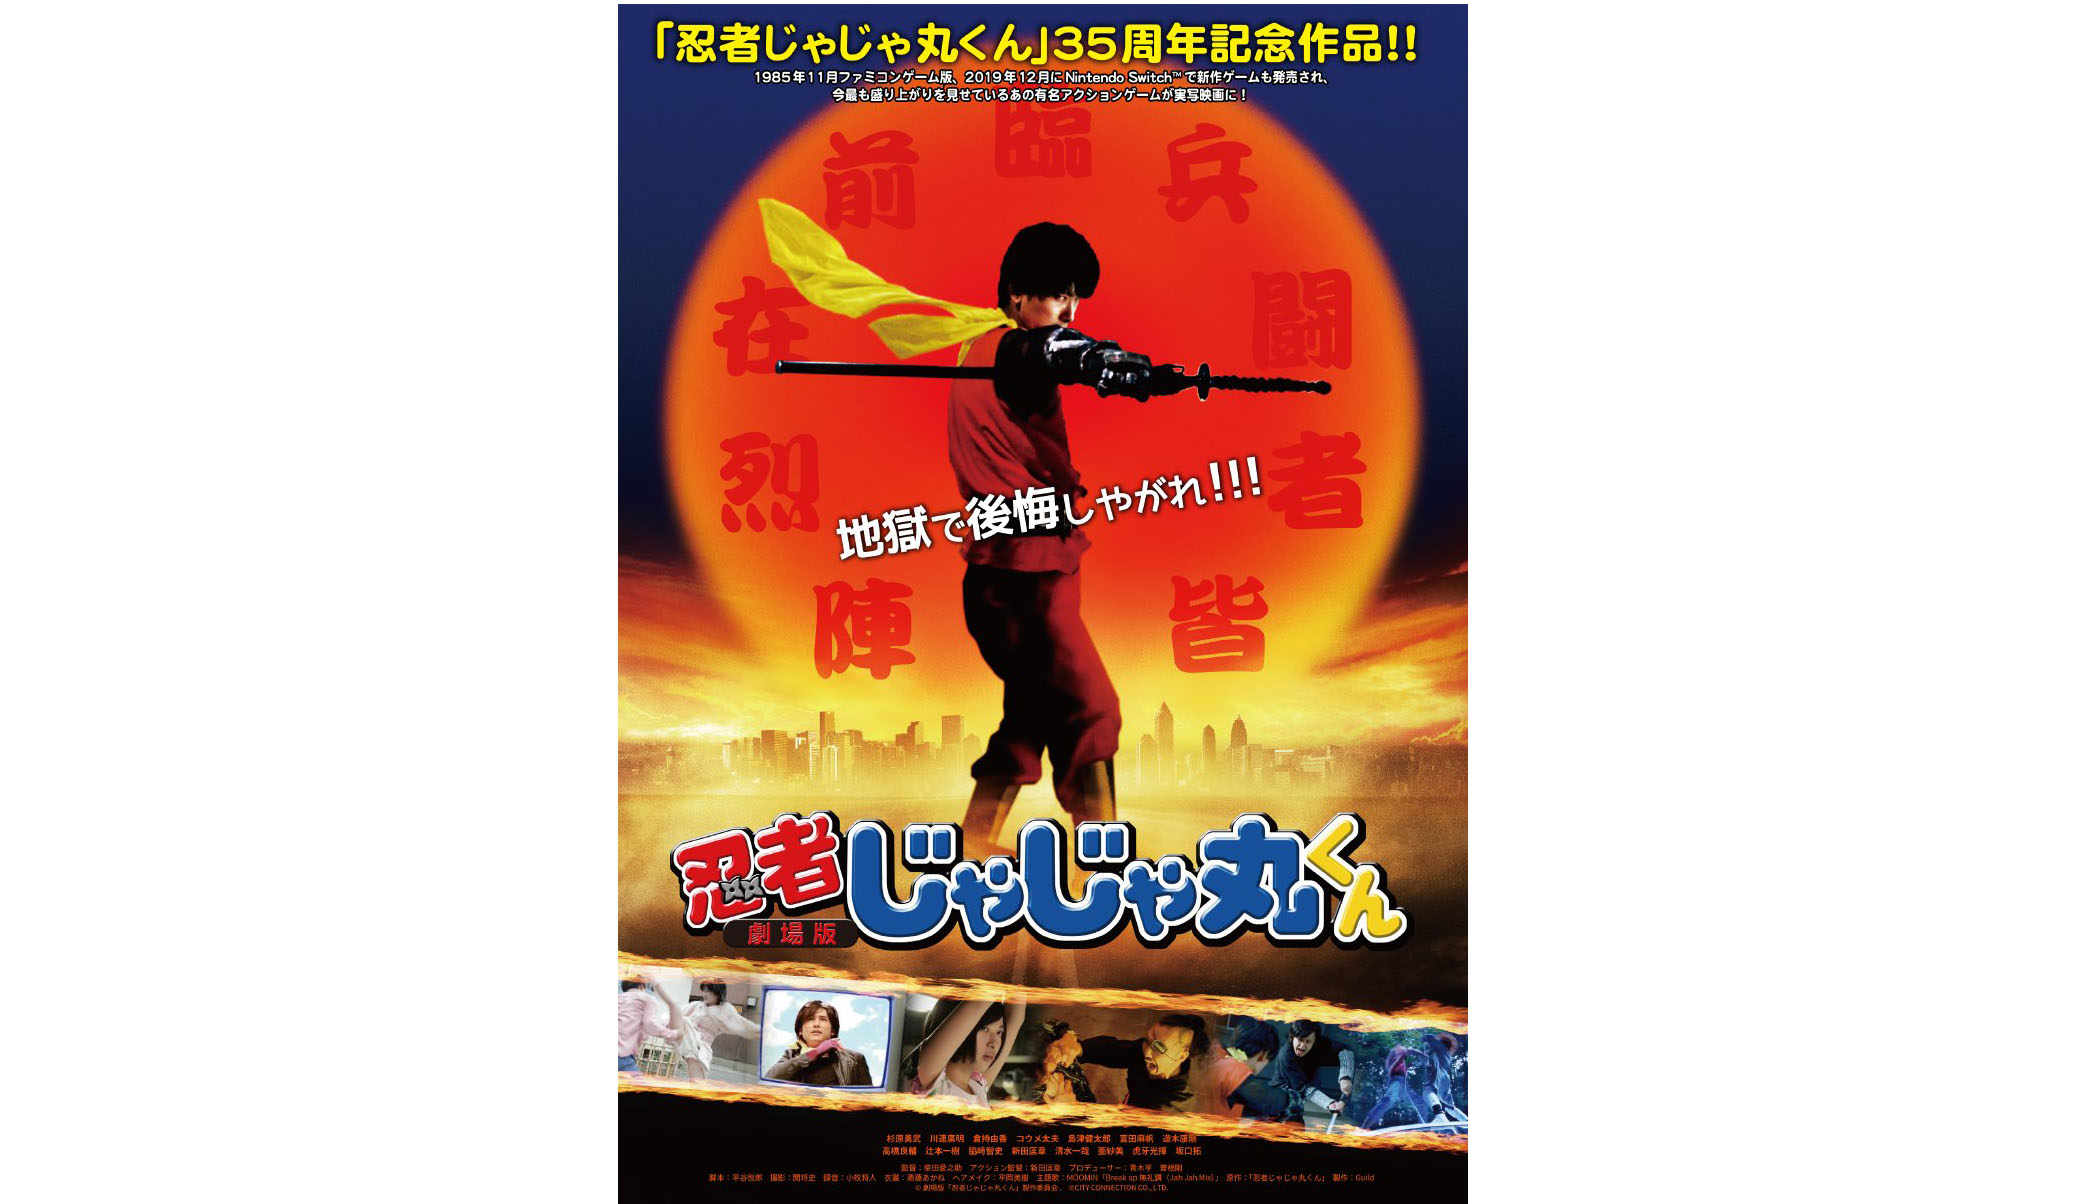 jyajyamaru-movie